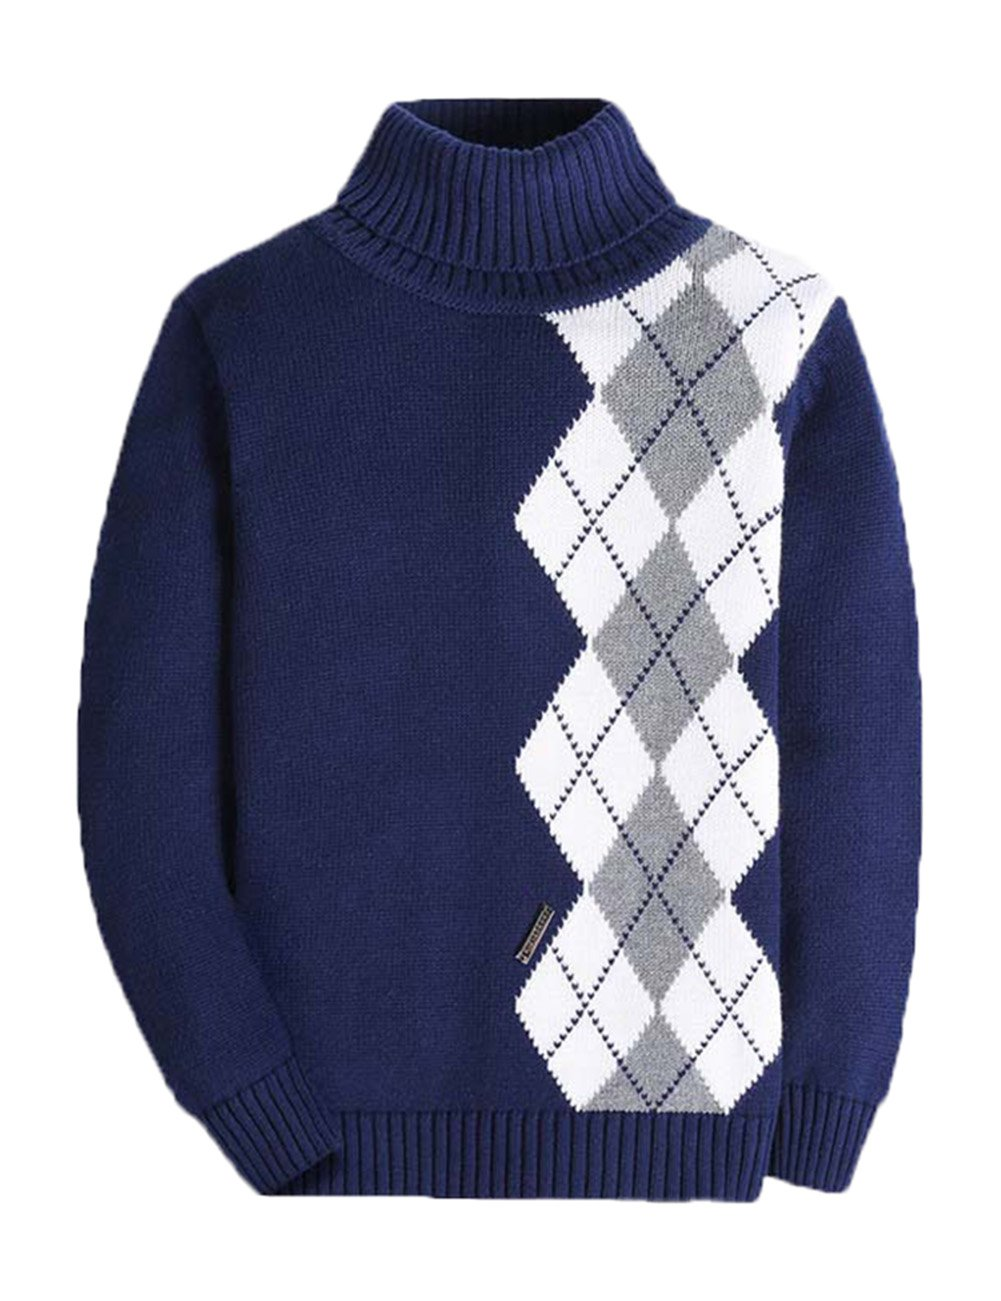 BASADINA Boys Thickened Turtleneck Sweater - Plaid Thick Sweater for Boys 100% Cotton